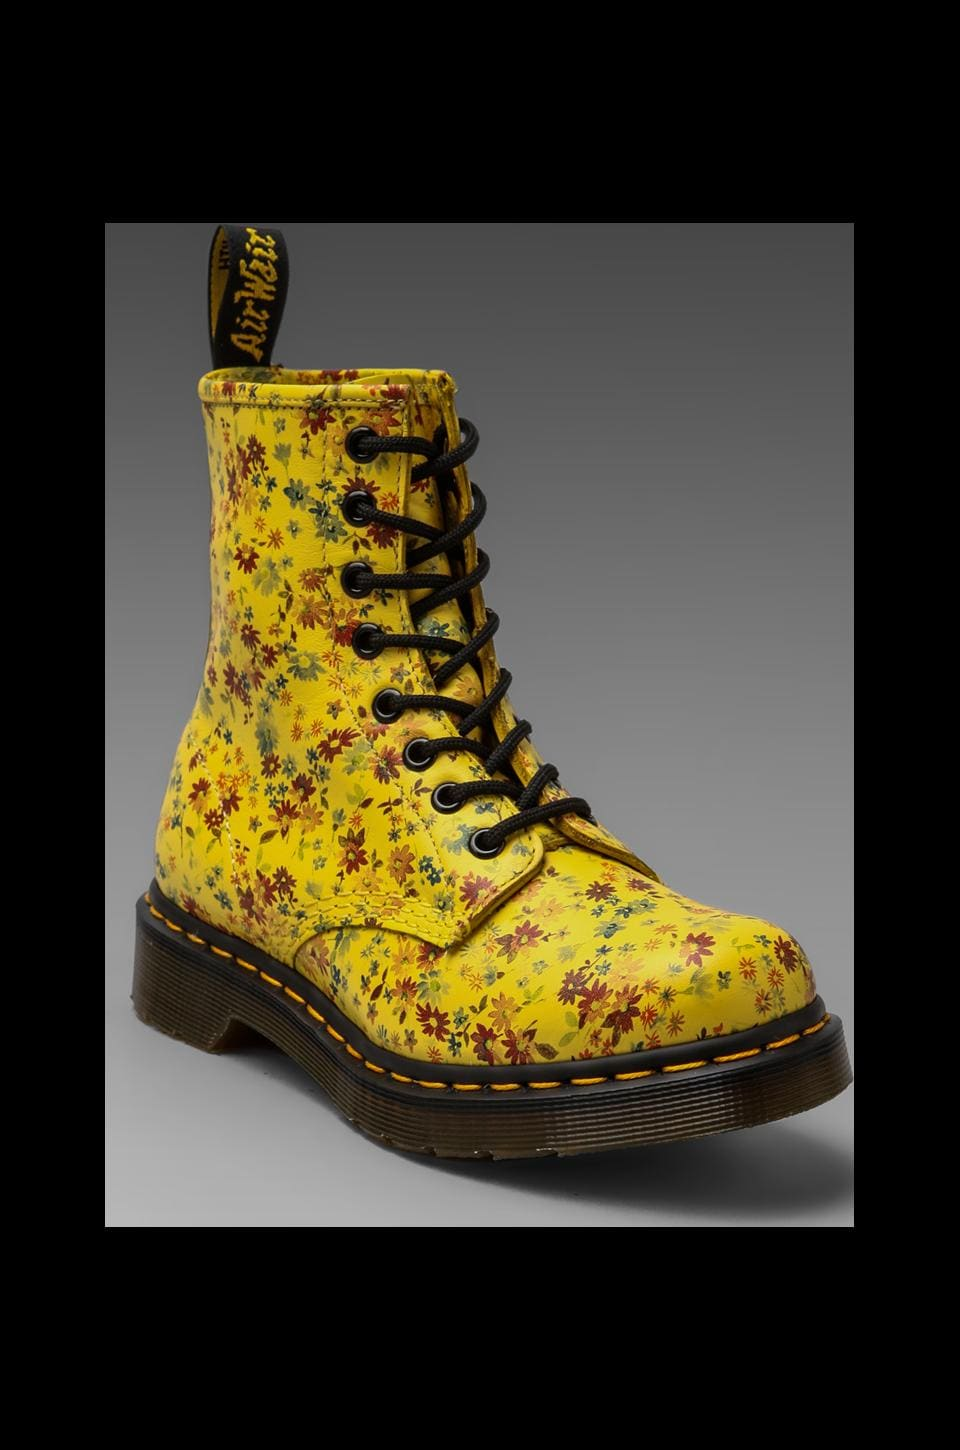 Dr. Martens 8-Eye Boot in Sun Yellow